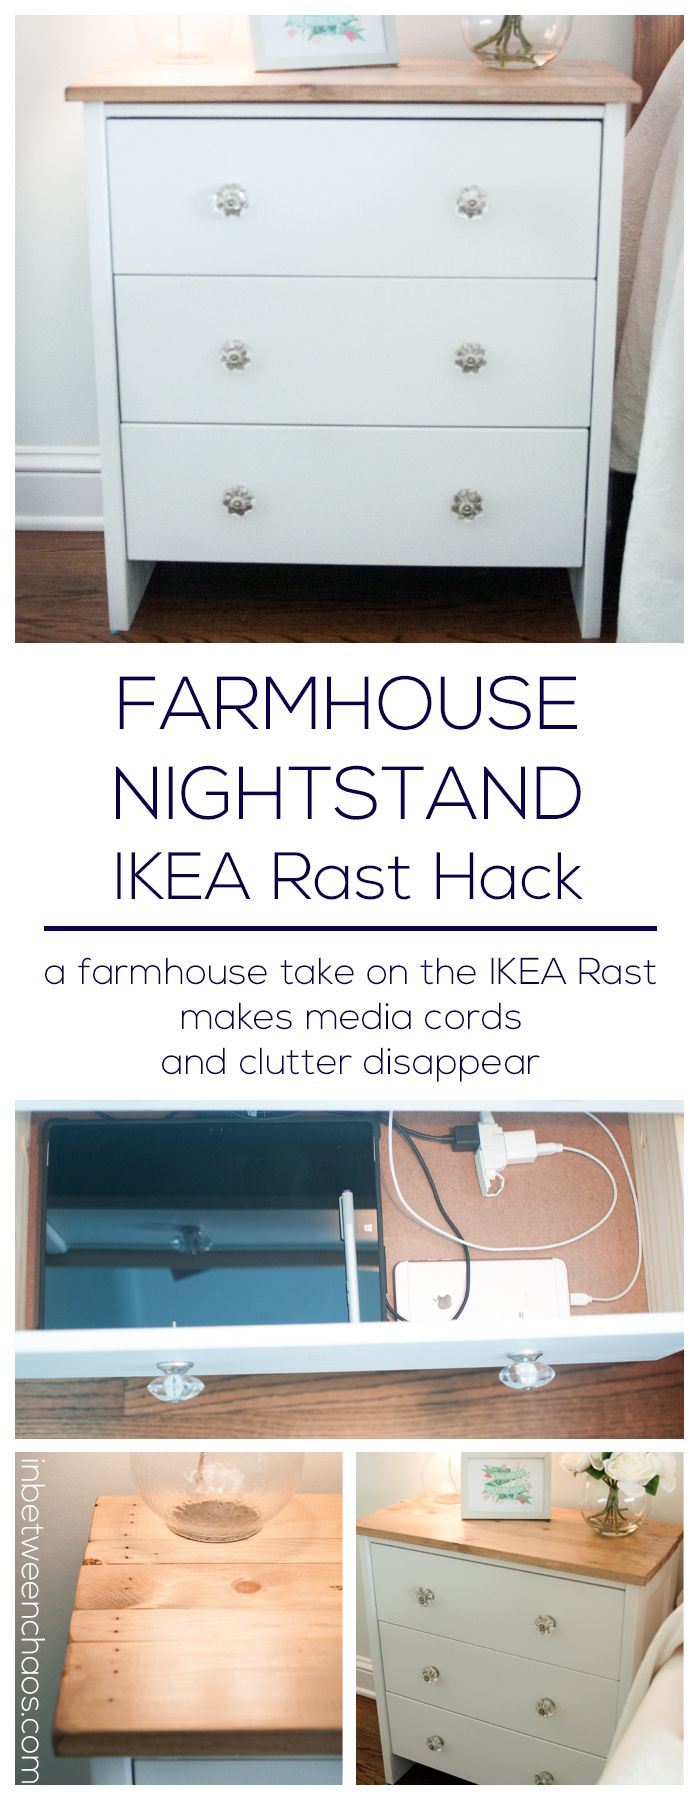 of the best farmhouse ikea hacks nightstands ikea hack and